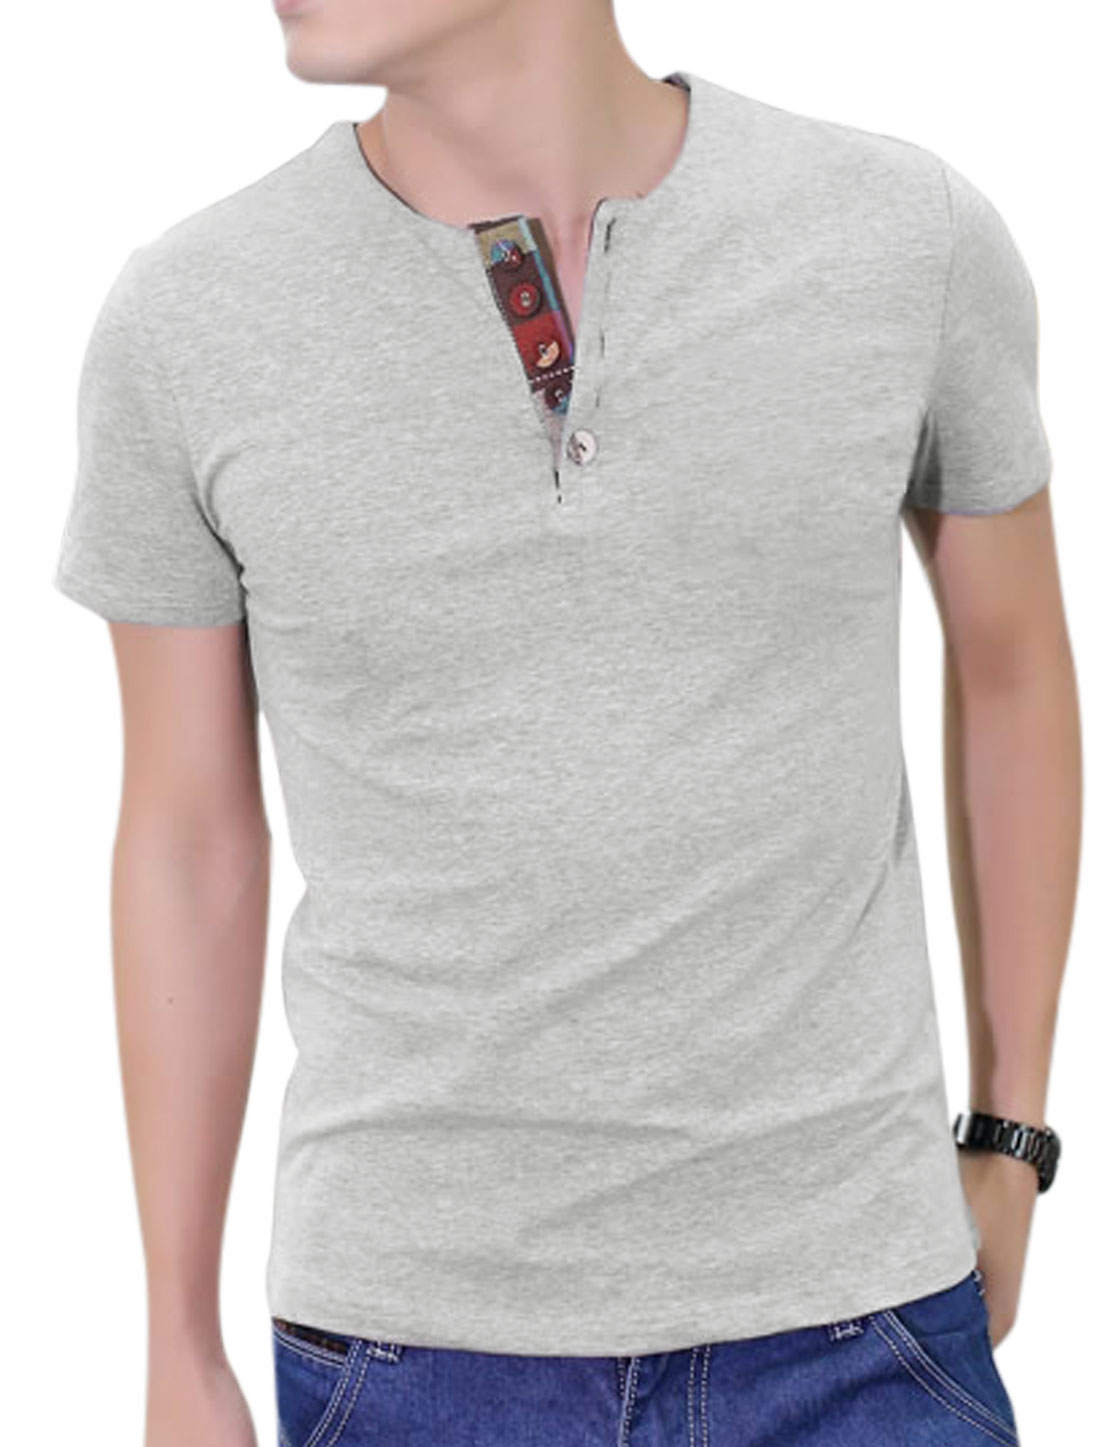 Easy Wear Round Neck Short Sleeve 1/4 Placket T-Shirt for Men Gray L